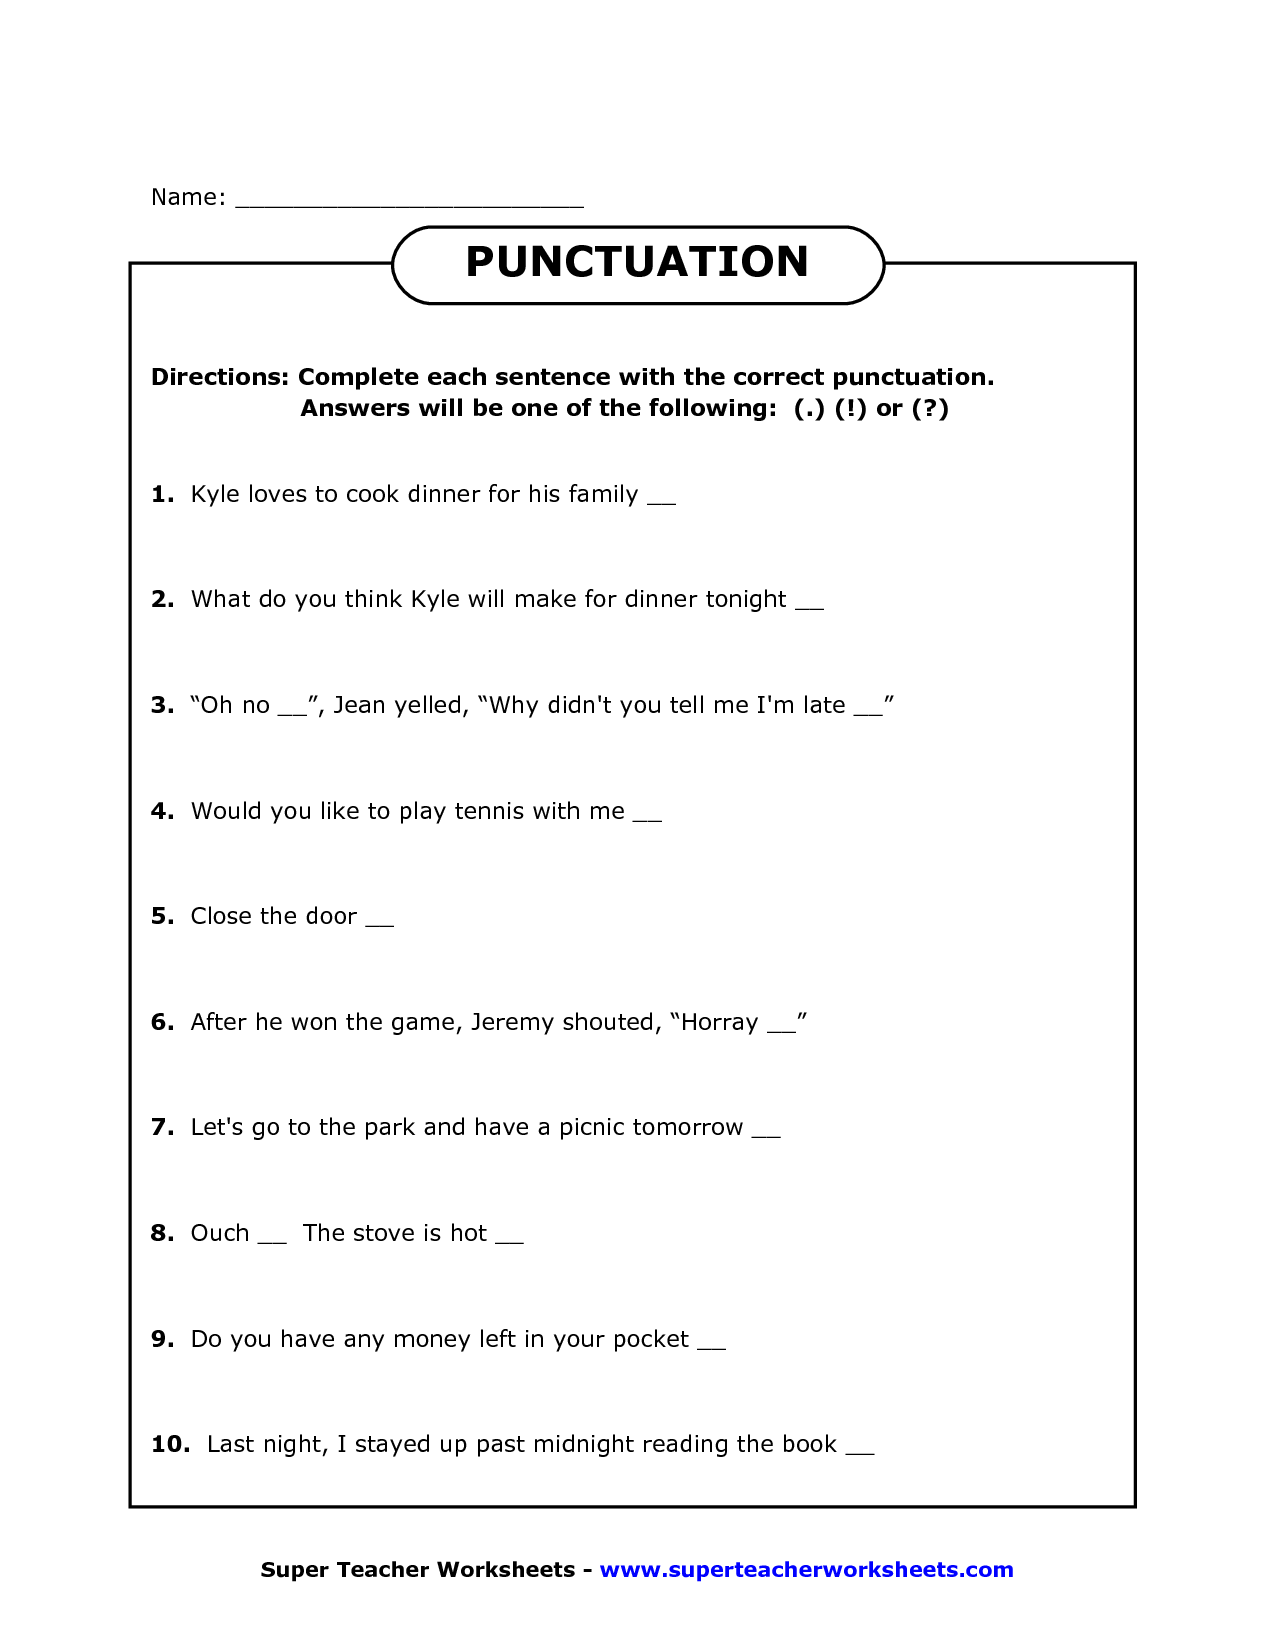 19 Best Images Of Punctuation Worksheets Grade 3